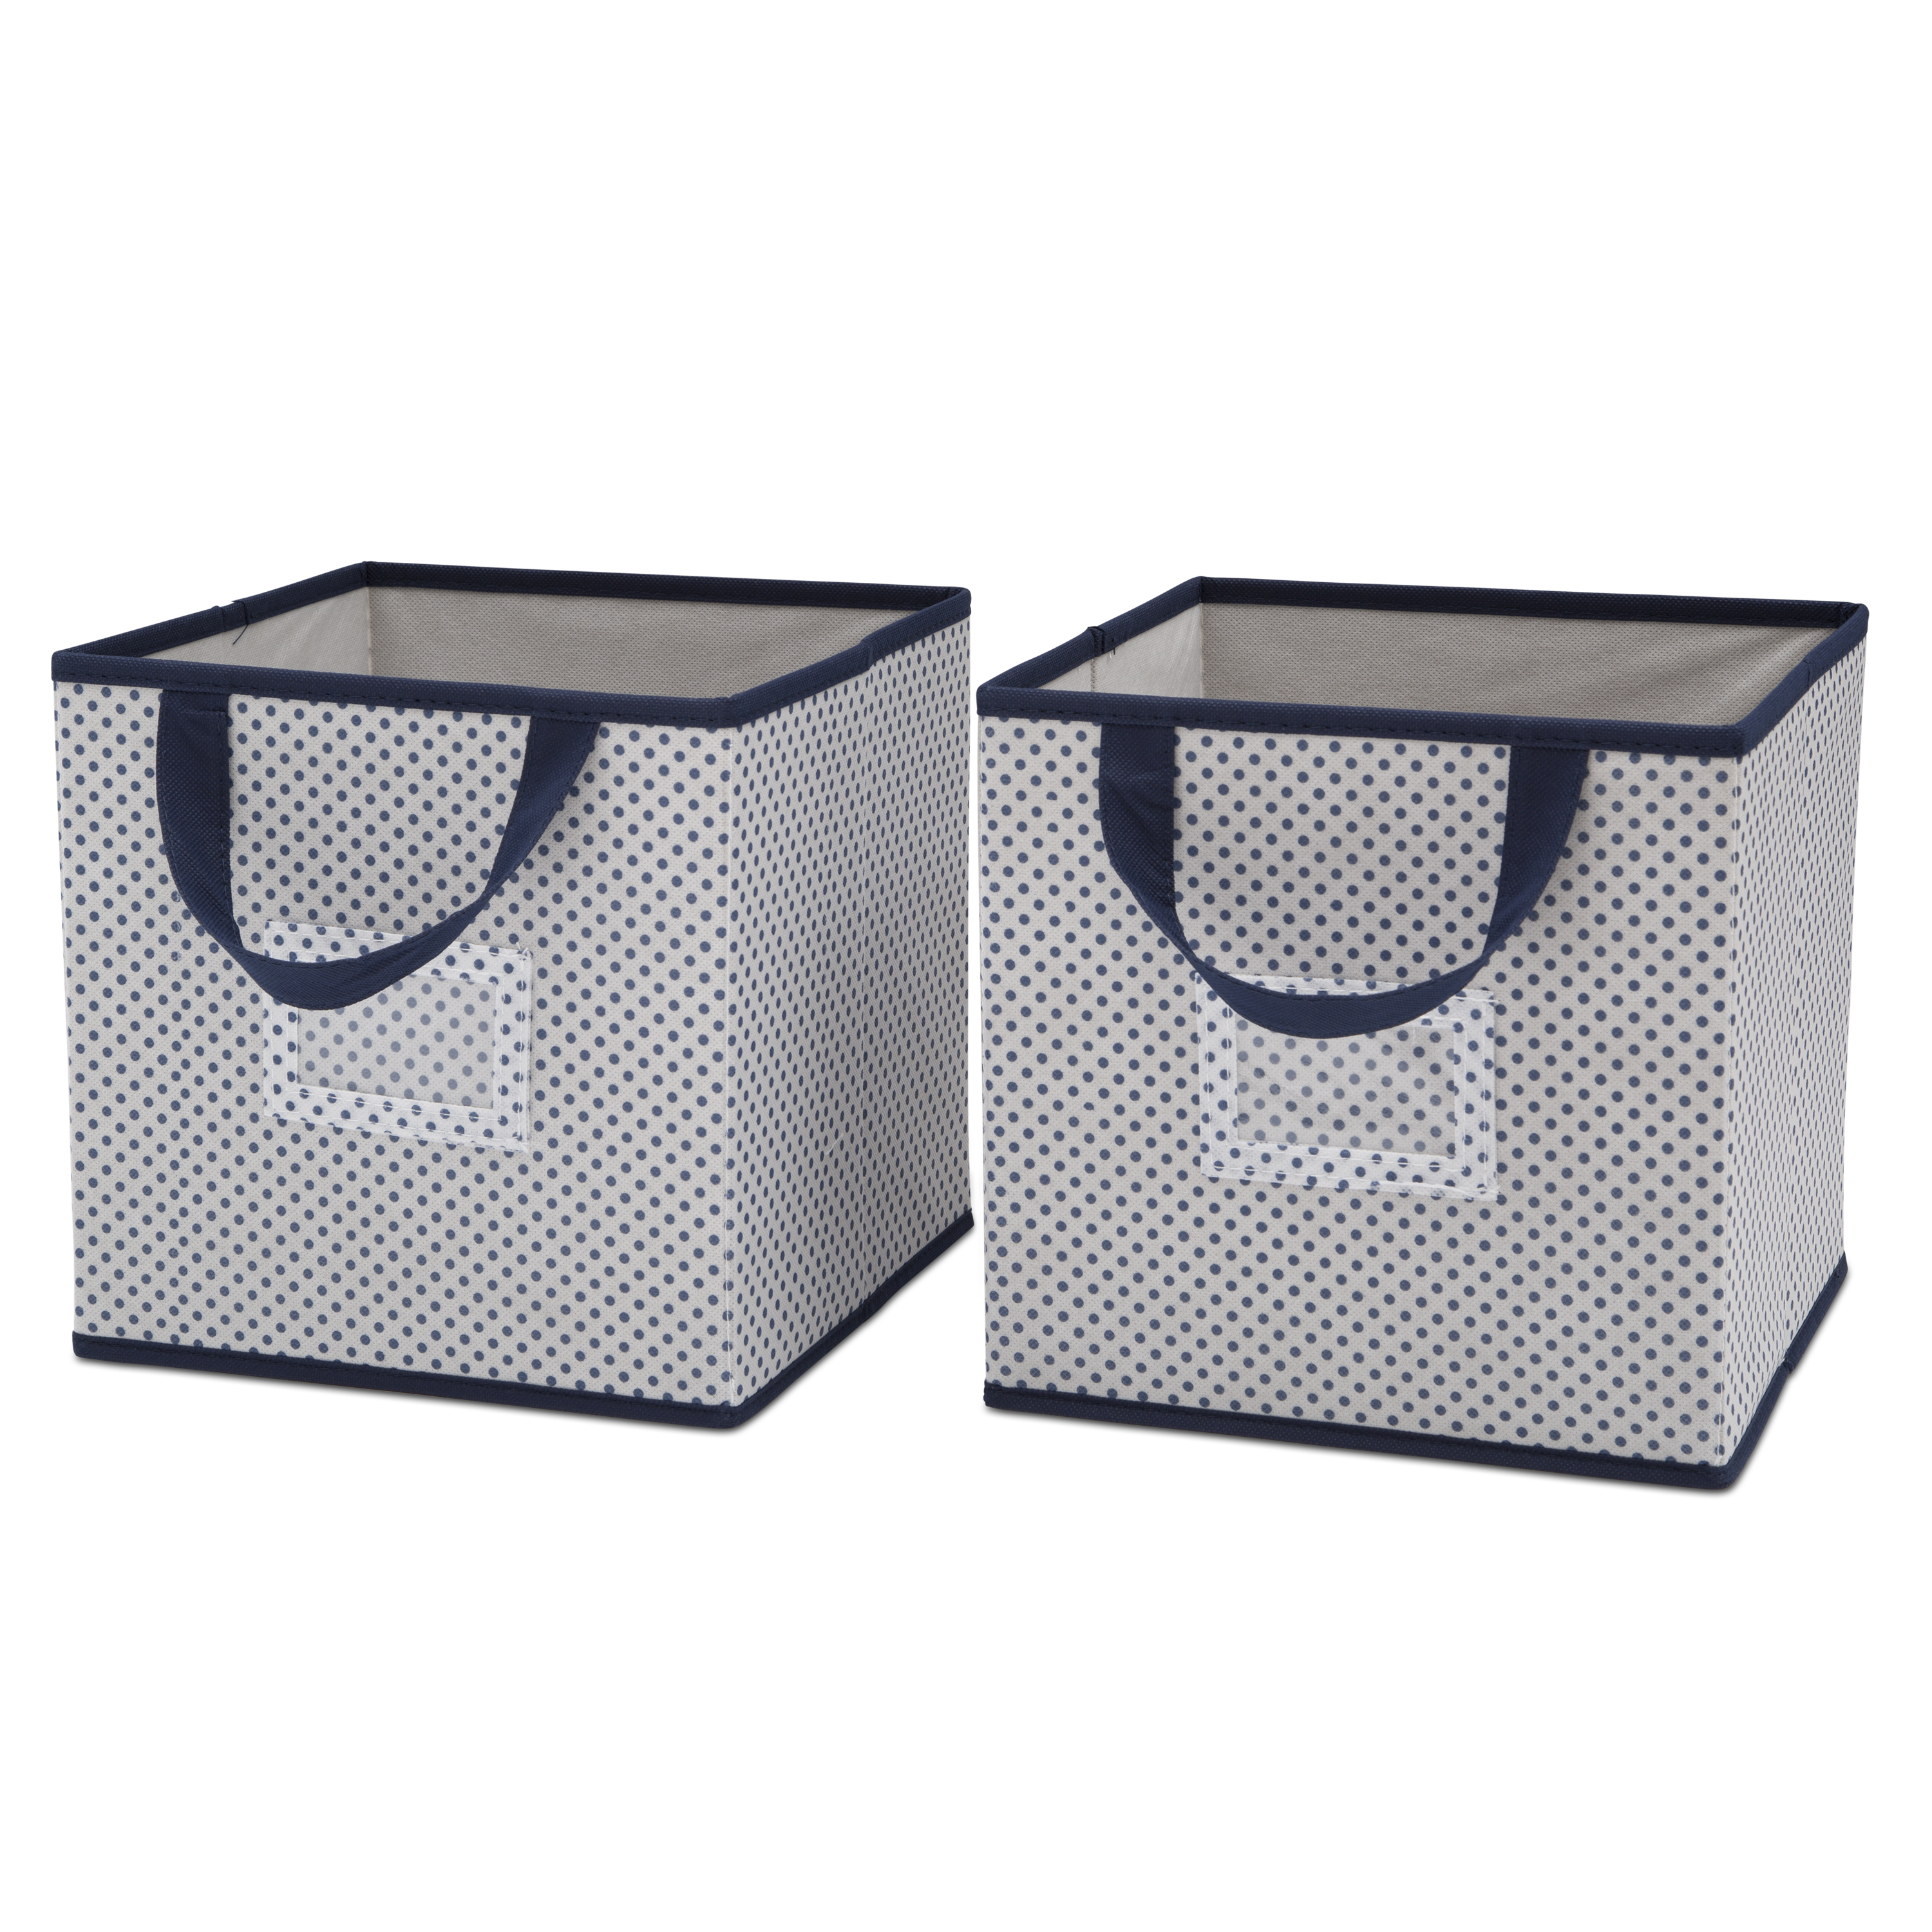 Delta Children 2-Piece Printed Storage Boxes - Infinity Pink